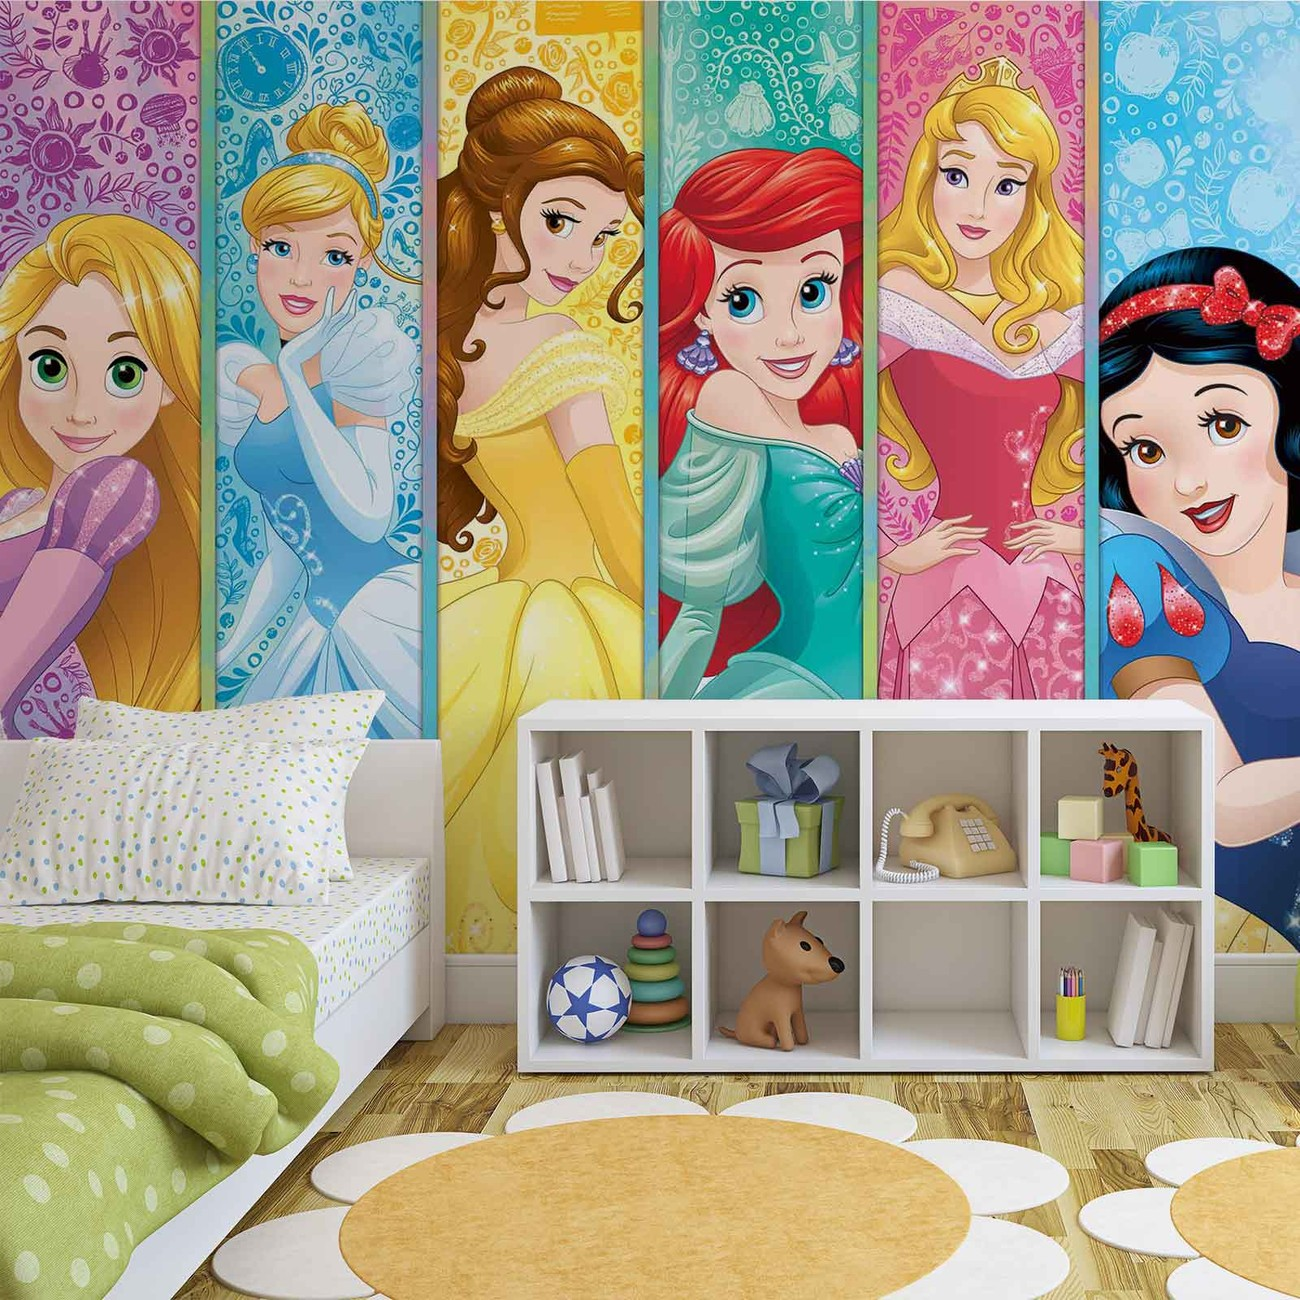 Disney princesses aurora belle ariel wall paper mural for Disney princess mural asda